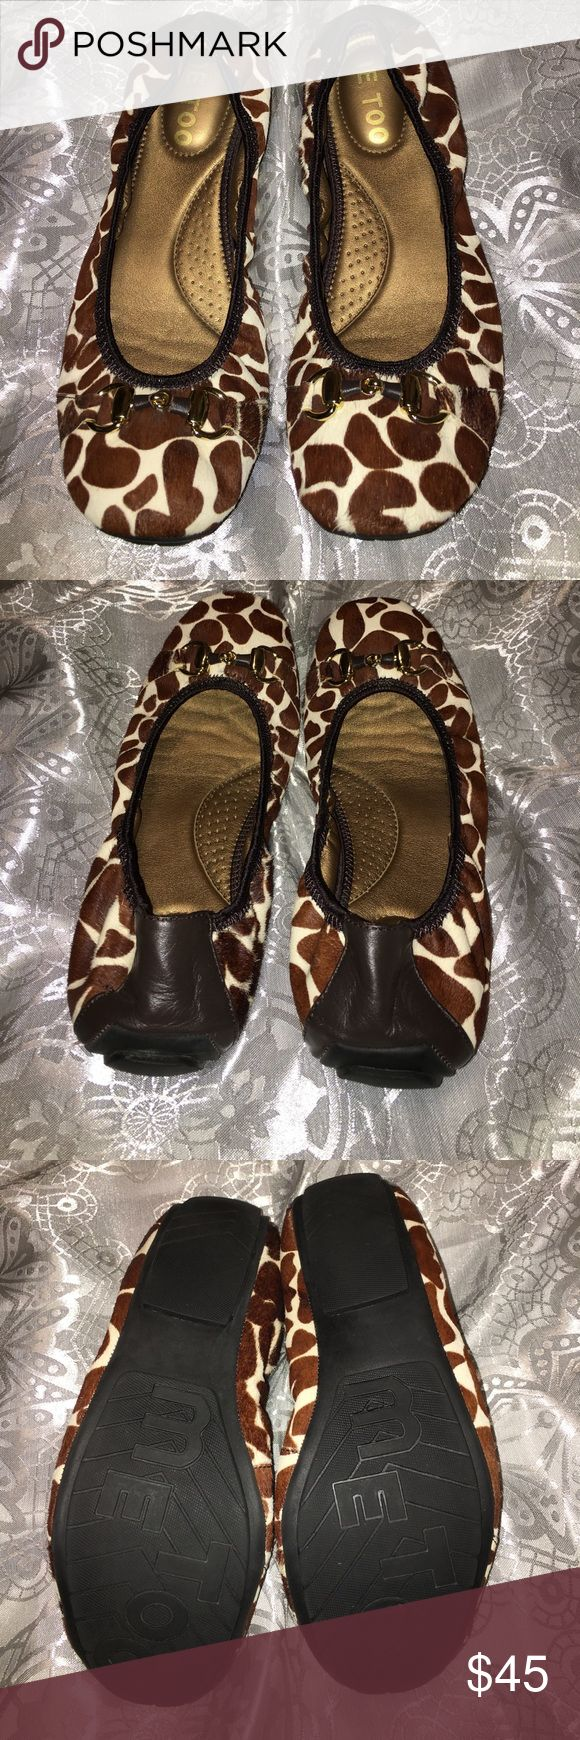 Me Too leather upper shoe, giraffe women's size 8 Me Too leather upper, giraffe print, flat shoe in women's size 8.  Excellent condition.  Cushioned inner sole. me too Shoes Flats & Loafers